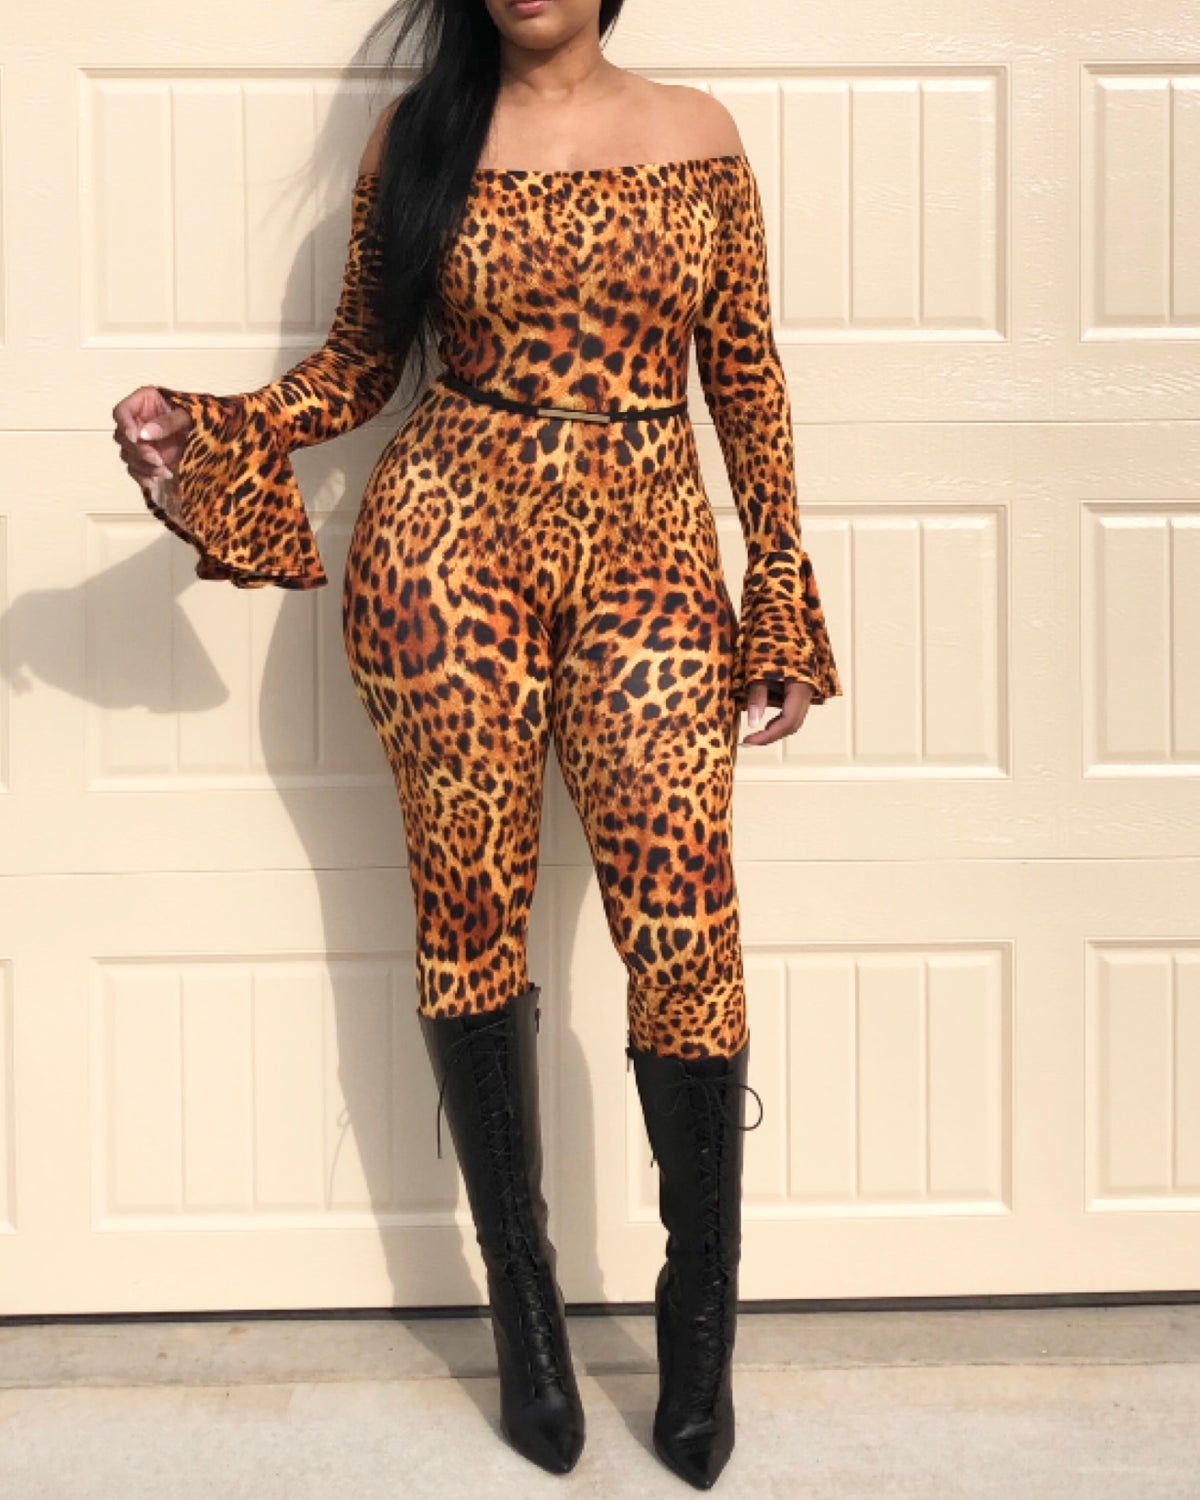 Wild Cheetah off-the-shoulder dunk suit